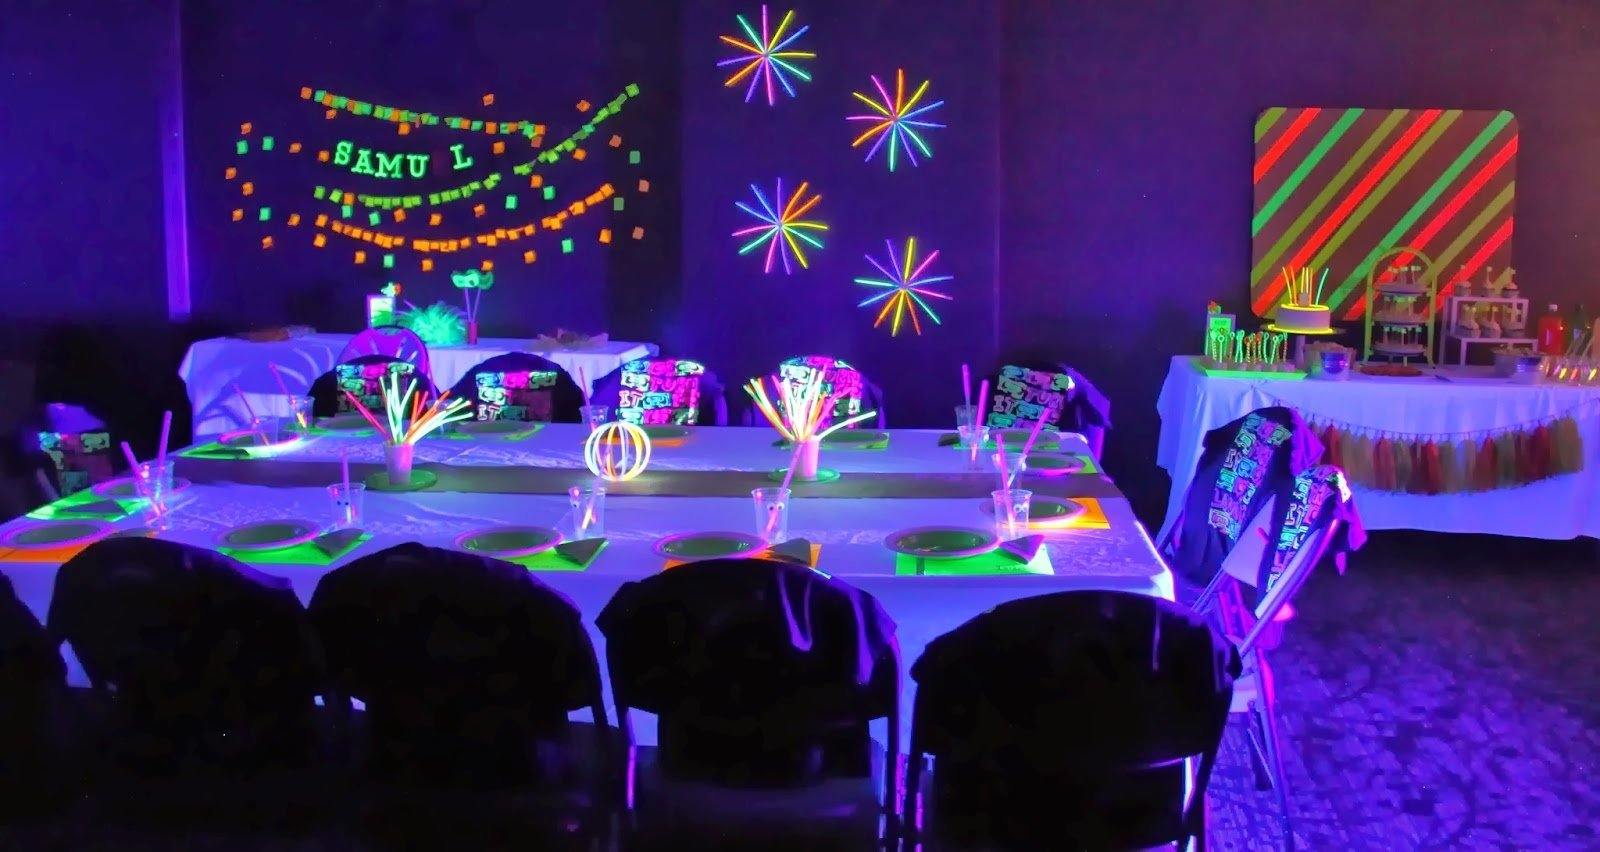 10 Famous Birthday Party Ideas For 16 Year Old Boy threelittlebirds events neon glow in the dark birthday party 4 2020